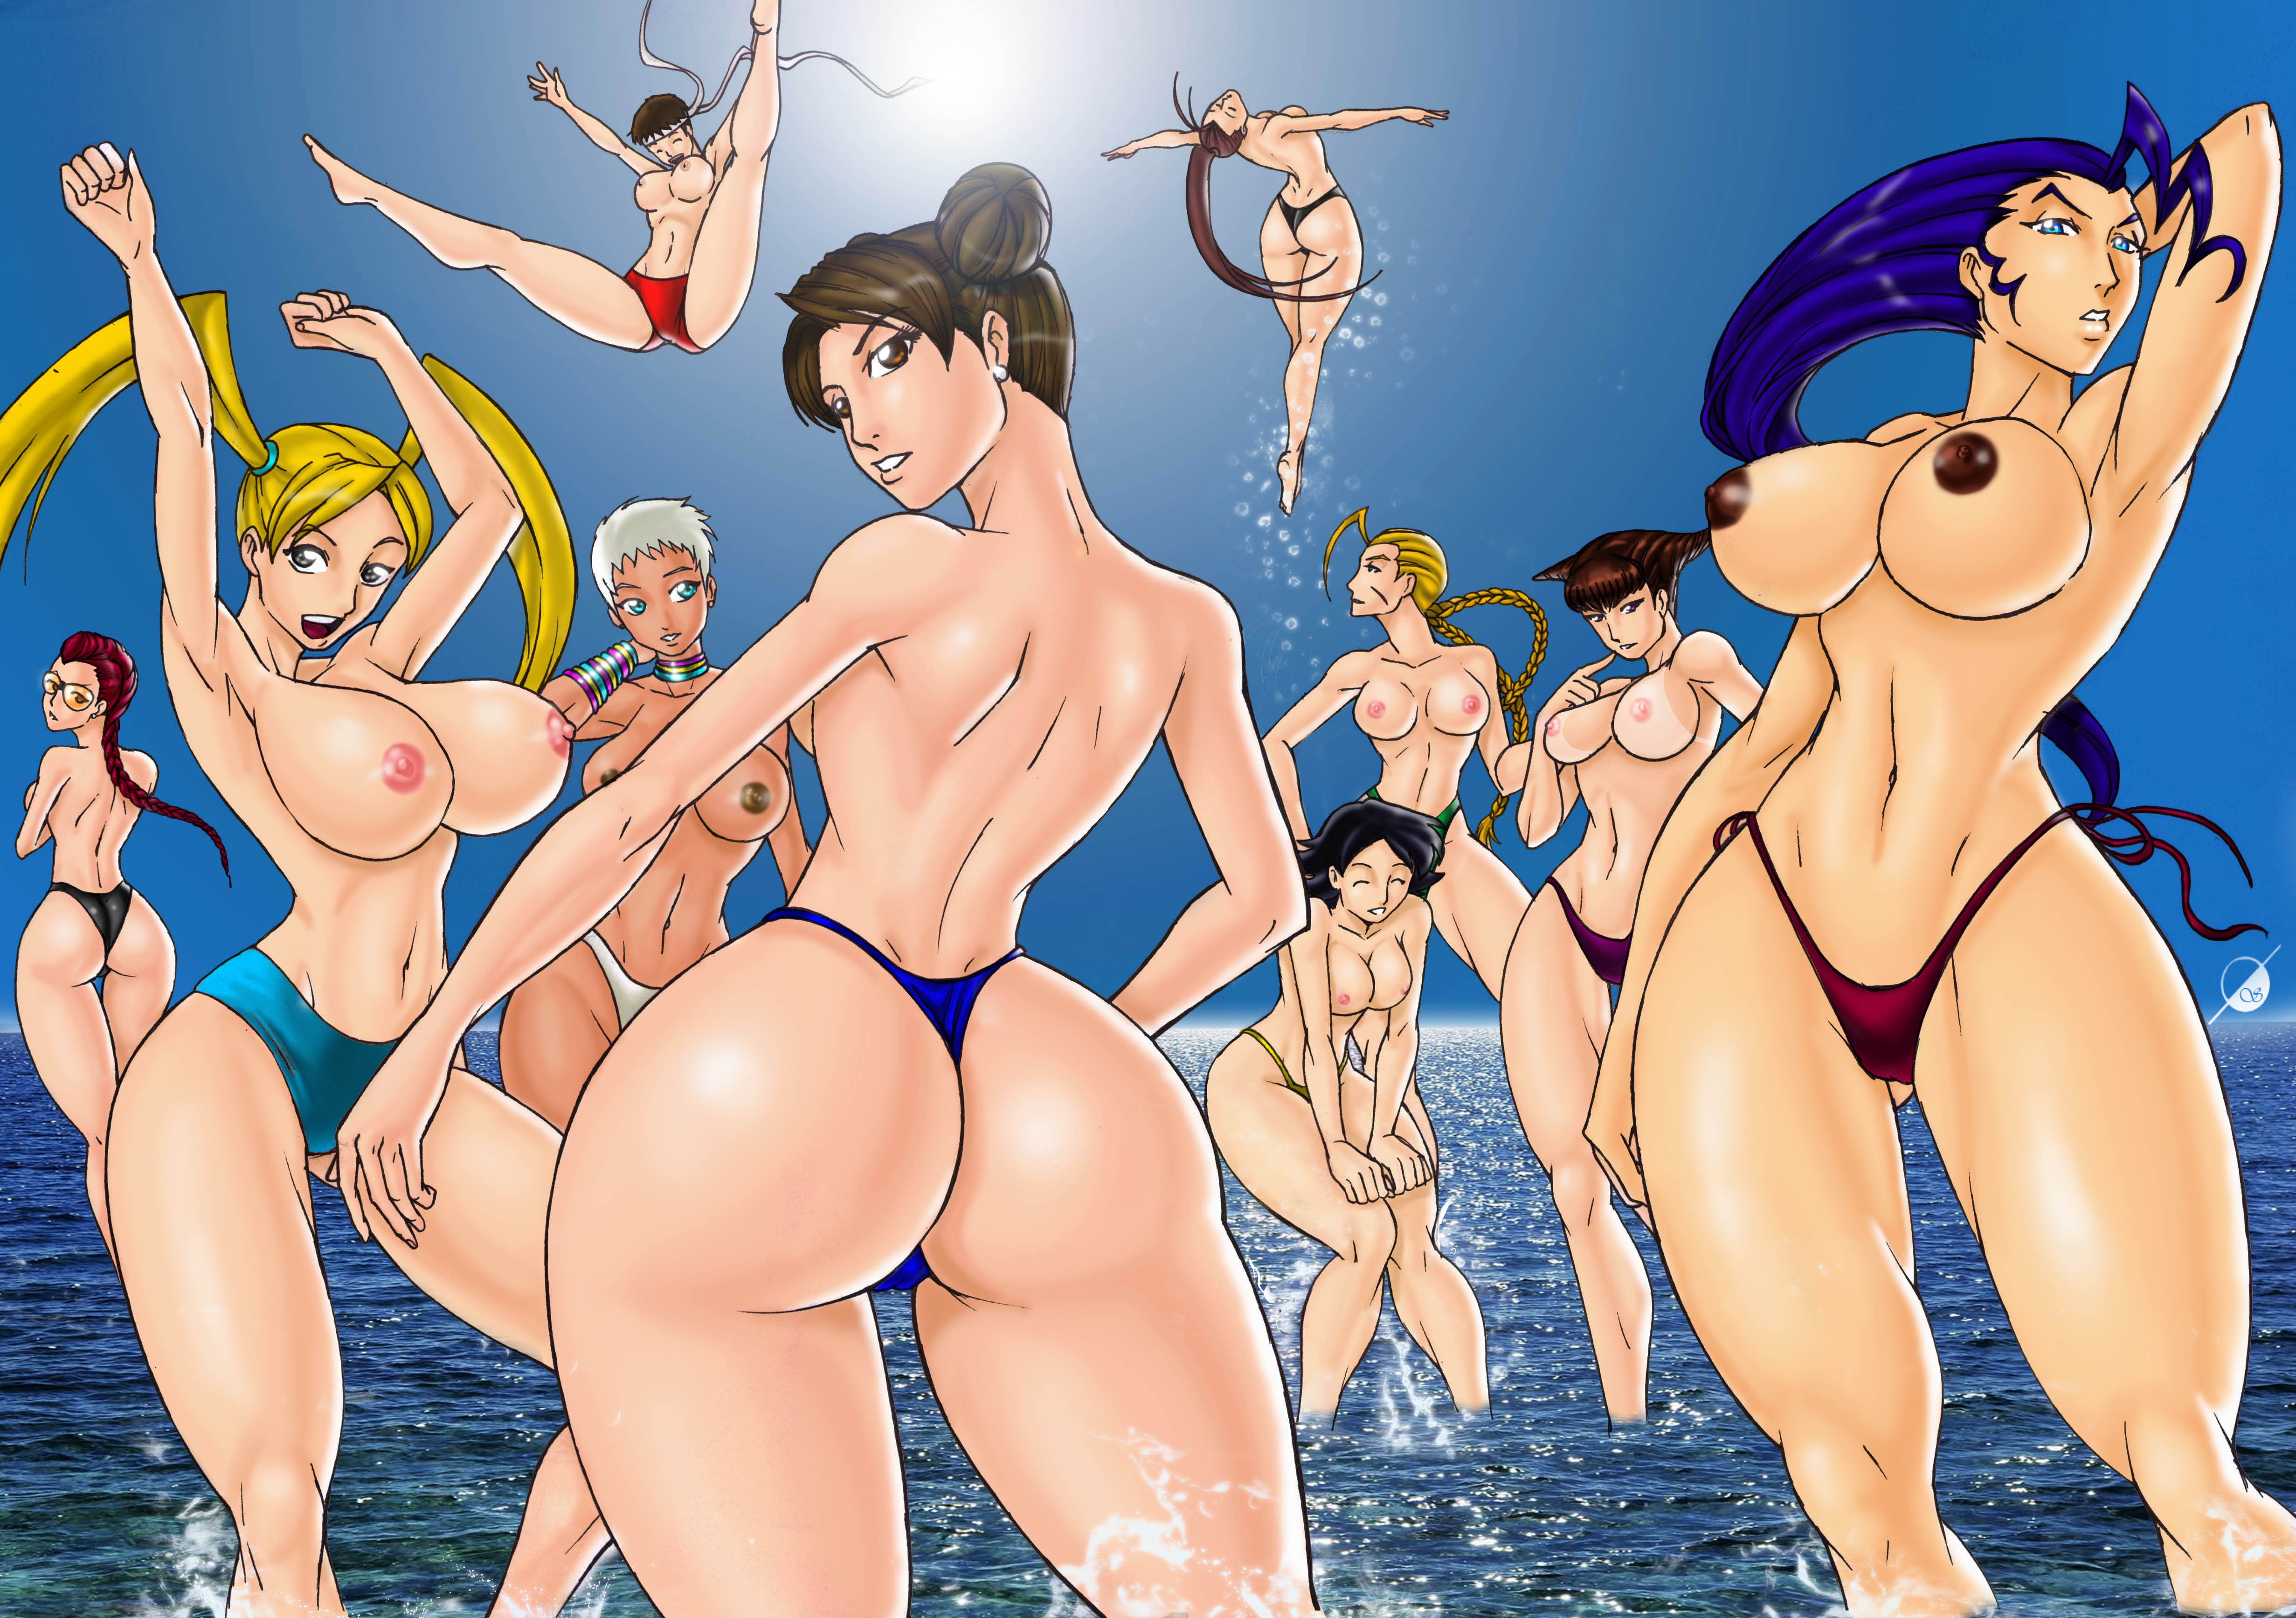 Street fighter hot porn pics smut picture